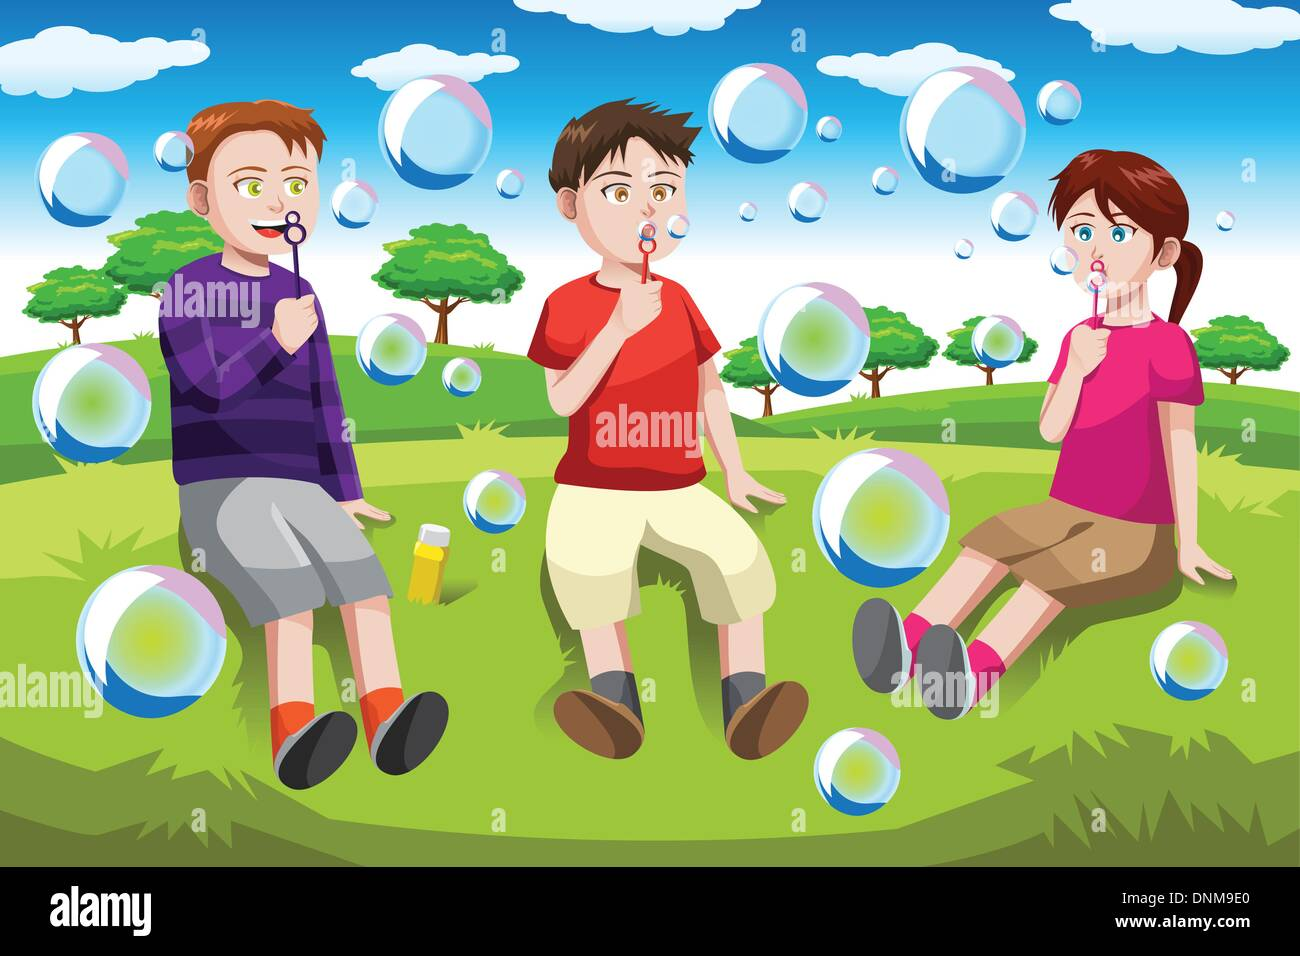 A vector illustration of happy kids blowing bubbles in the park - Stock Vector